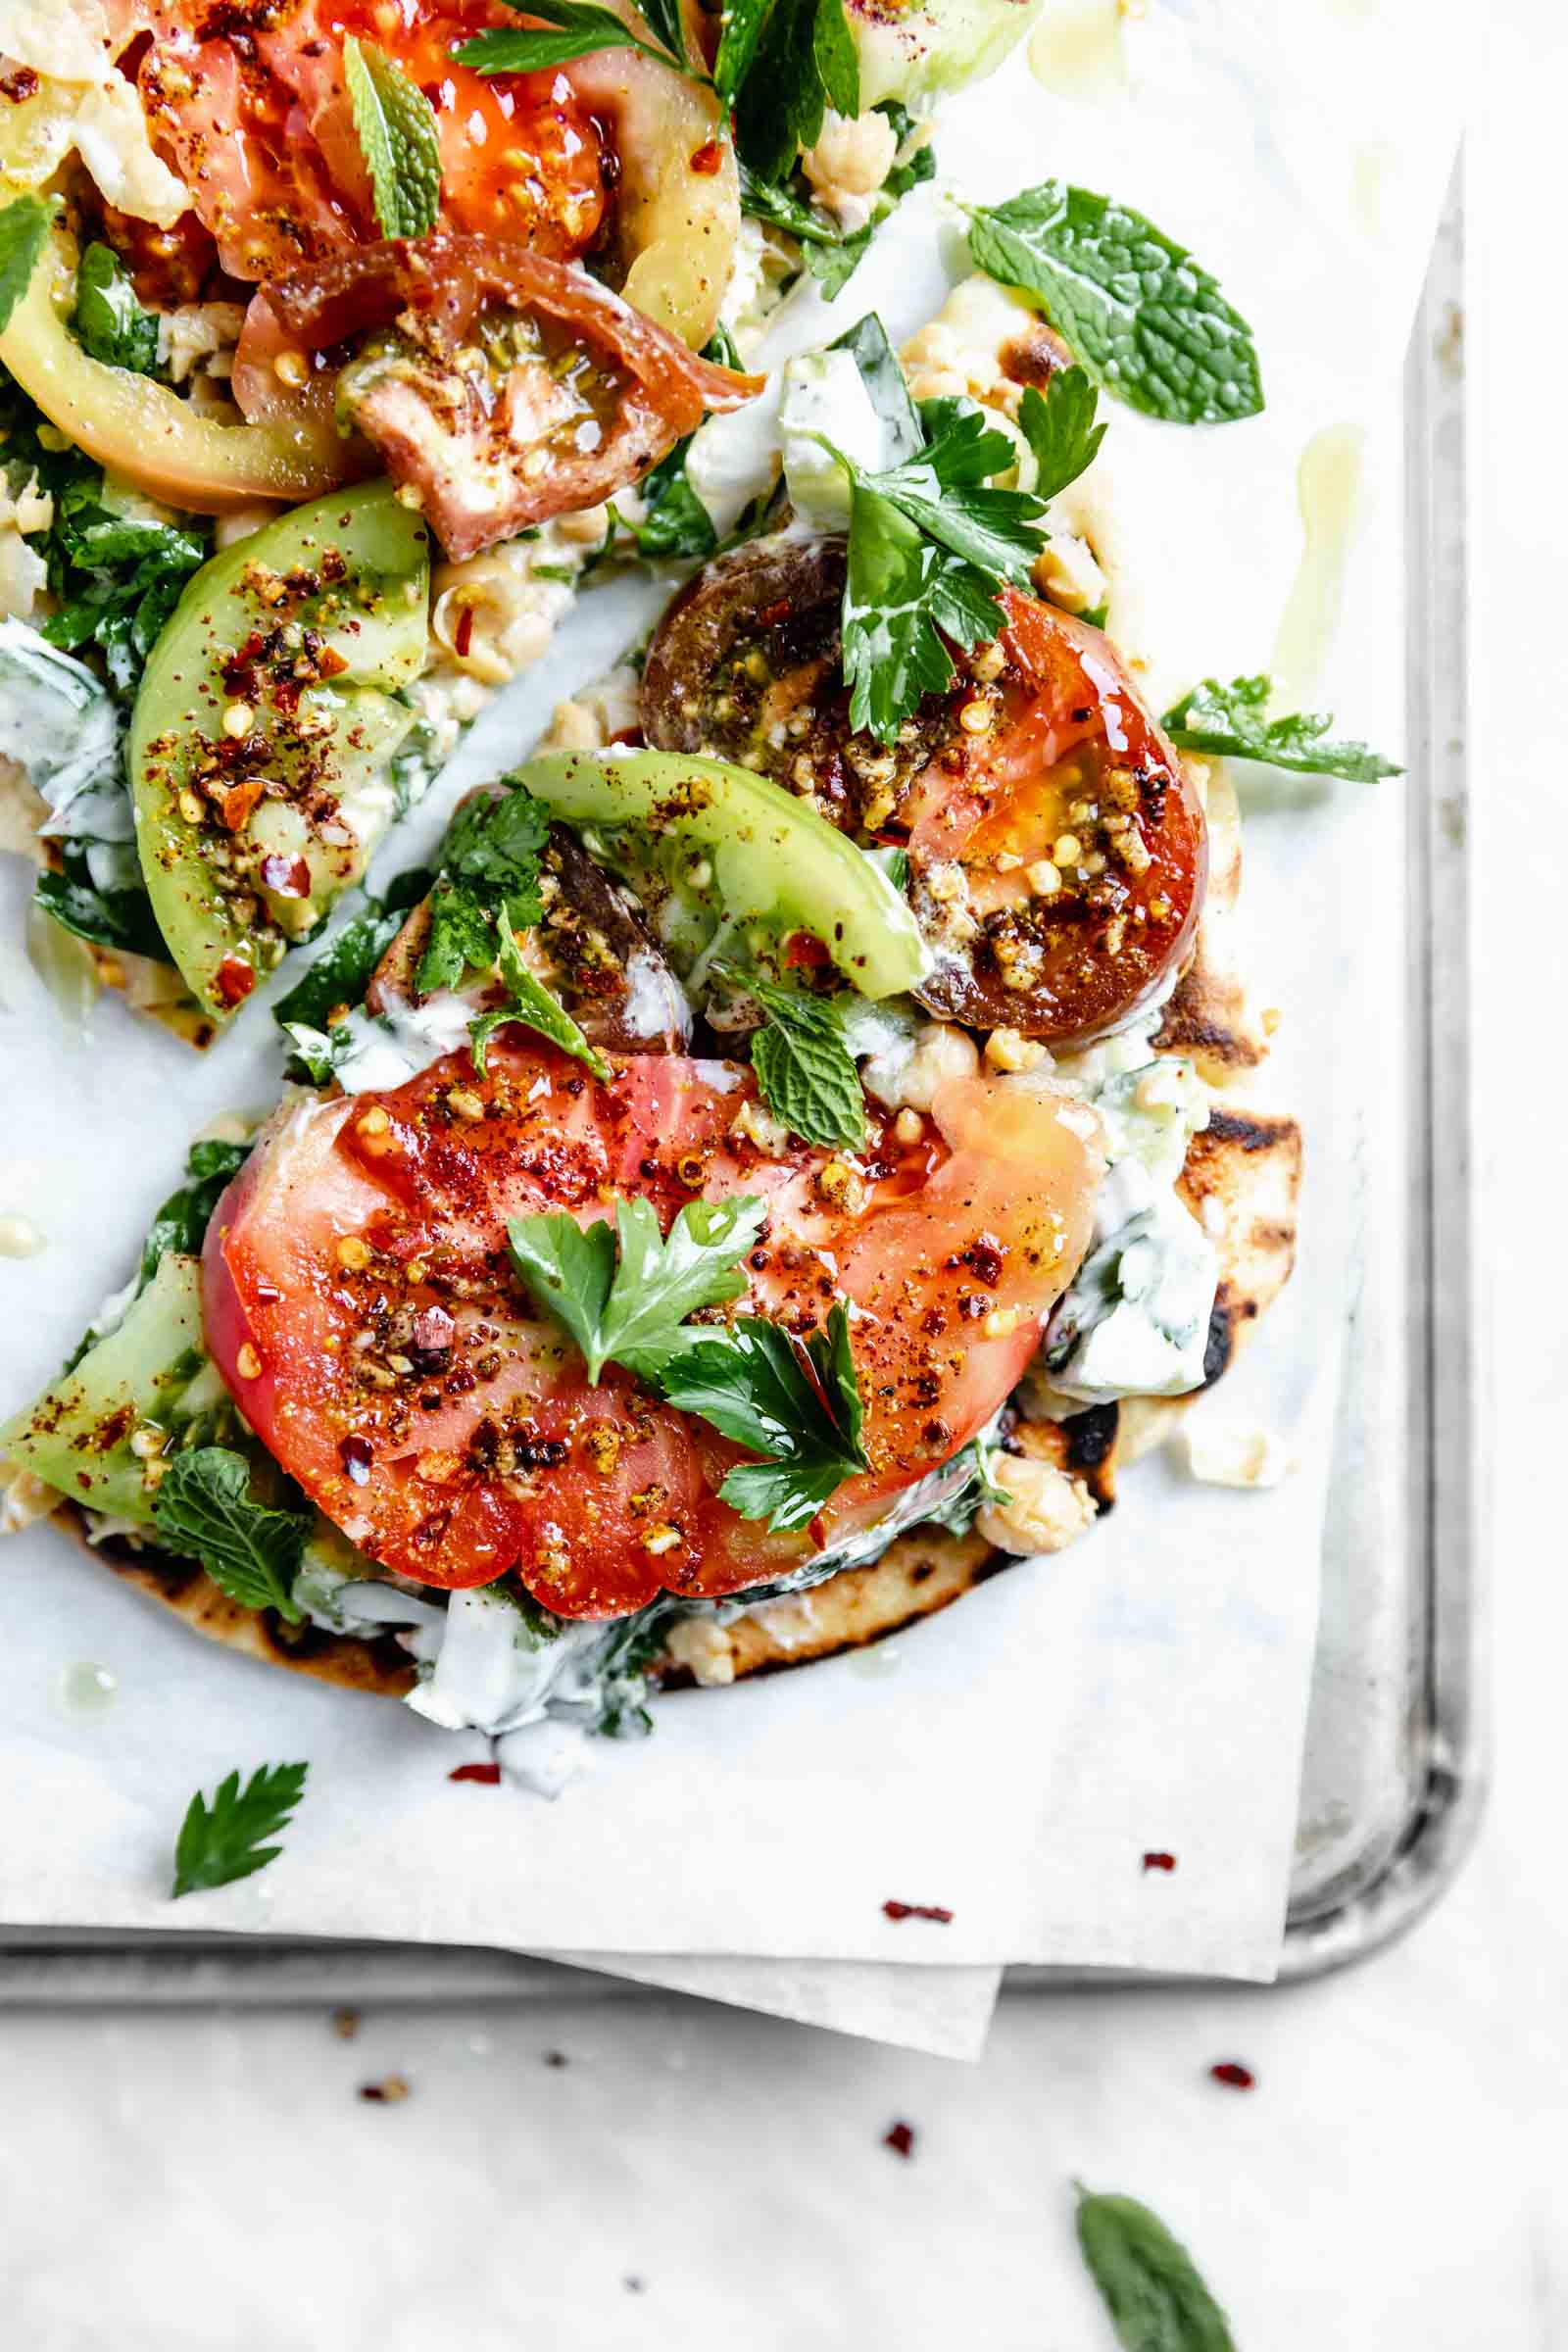 falafel-spiced tomato and chickpea flatbread drizzled with olive oil